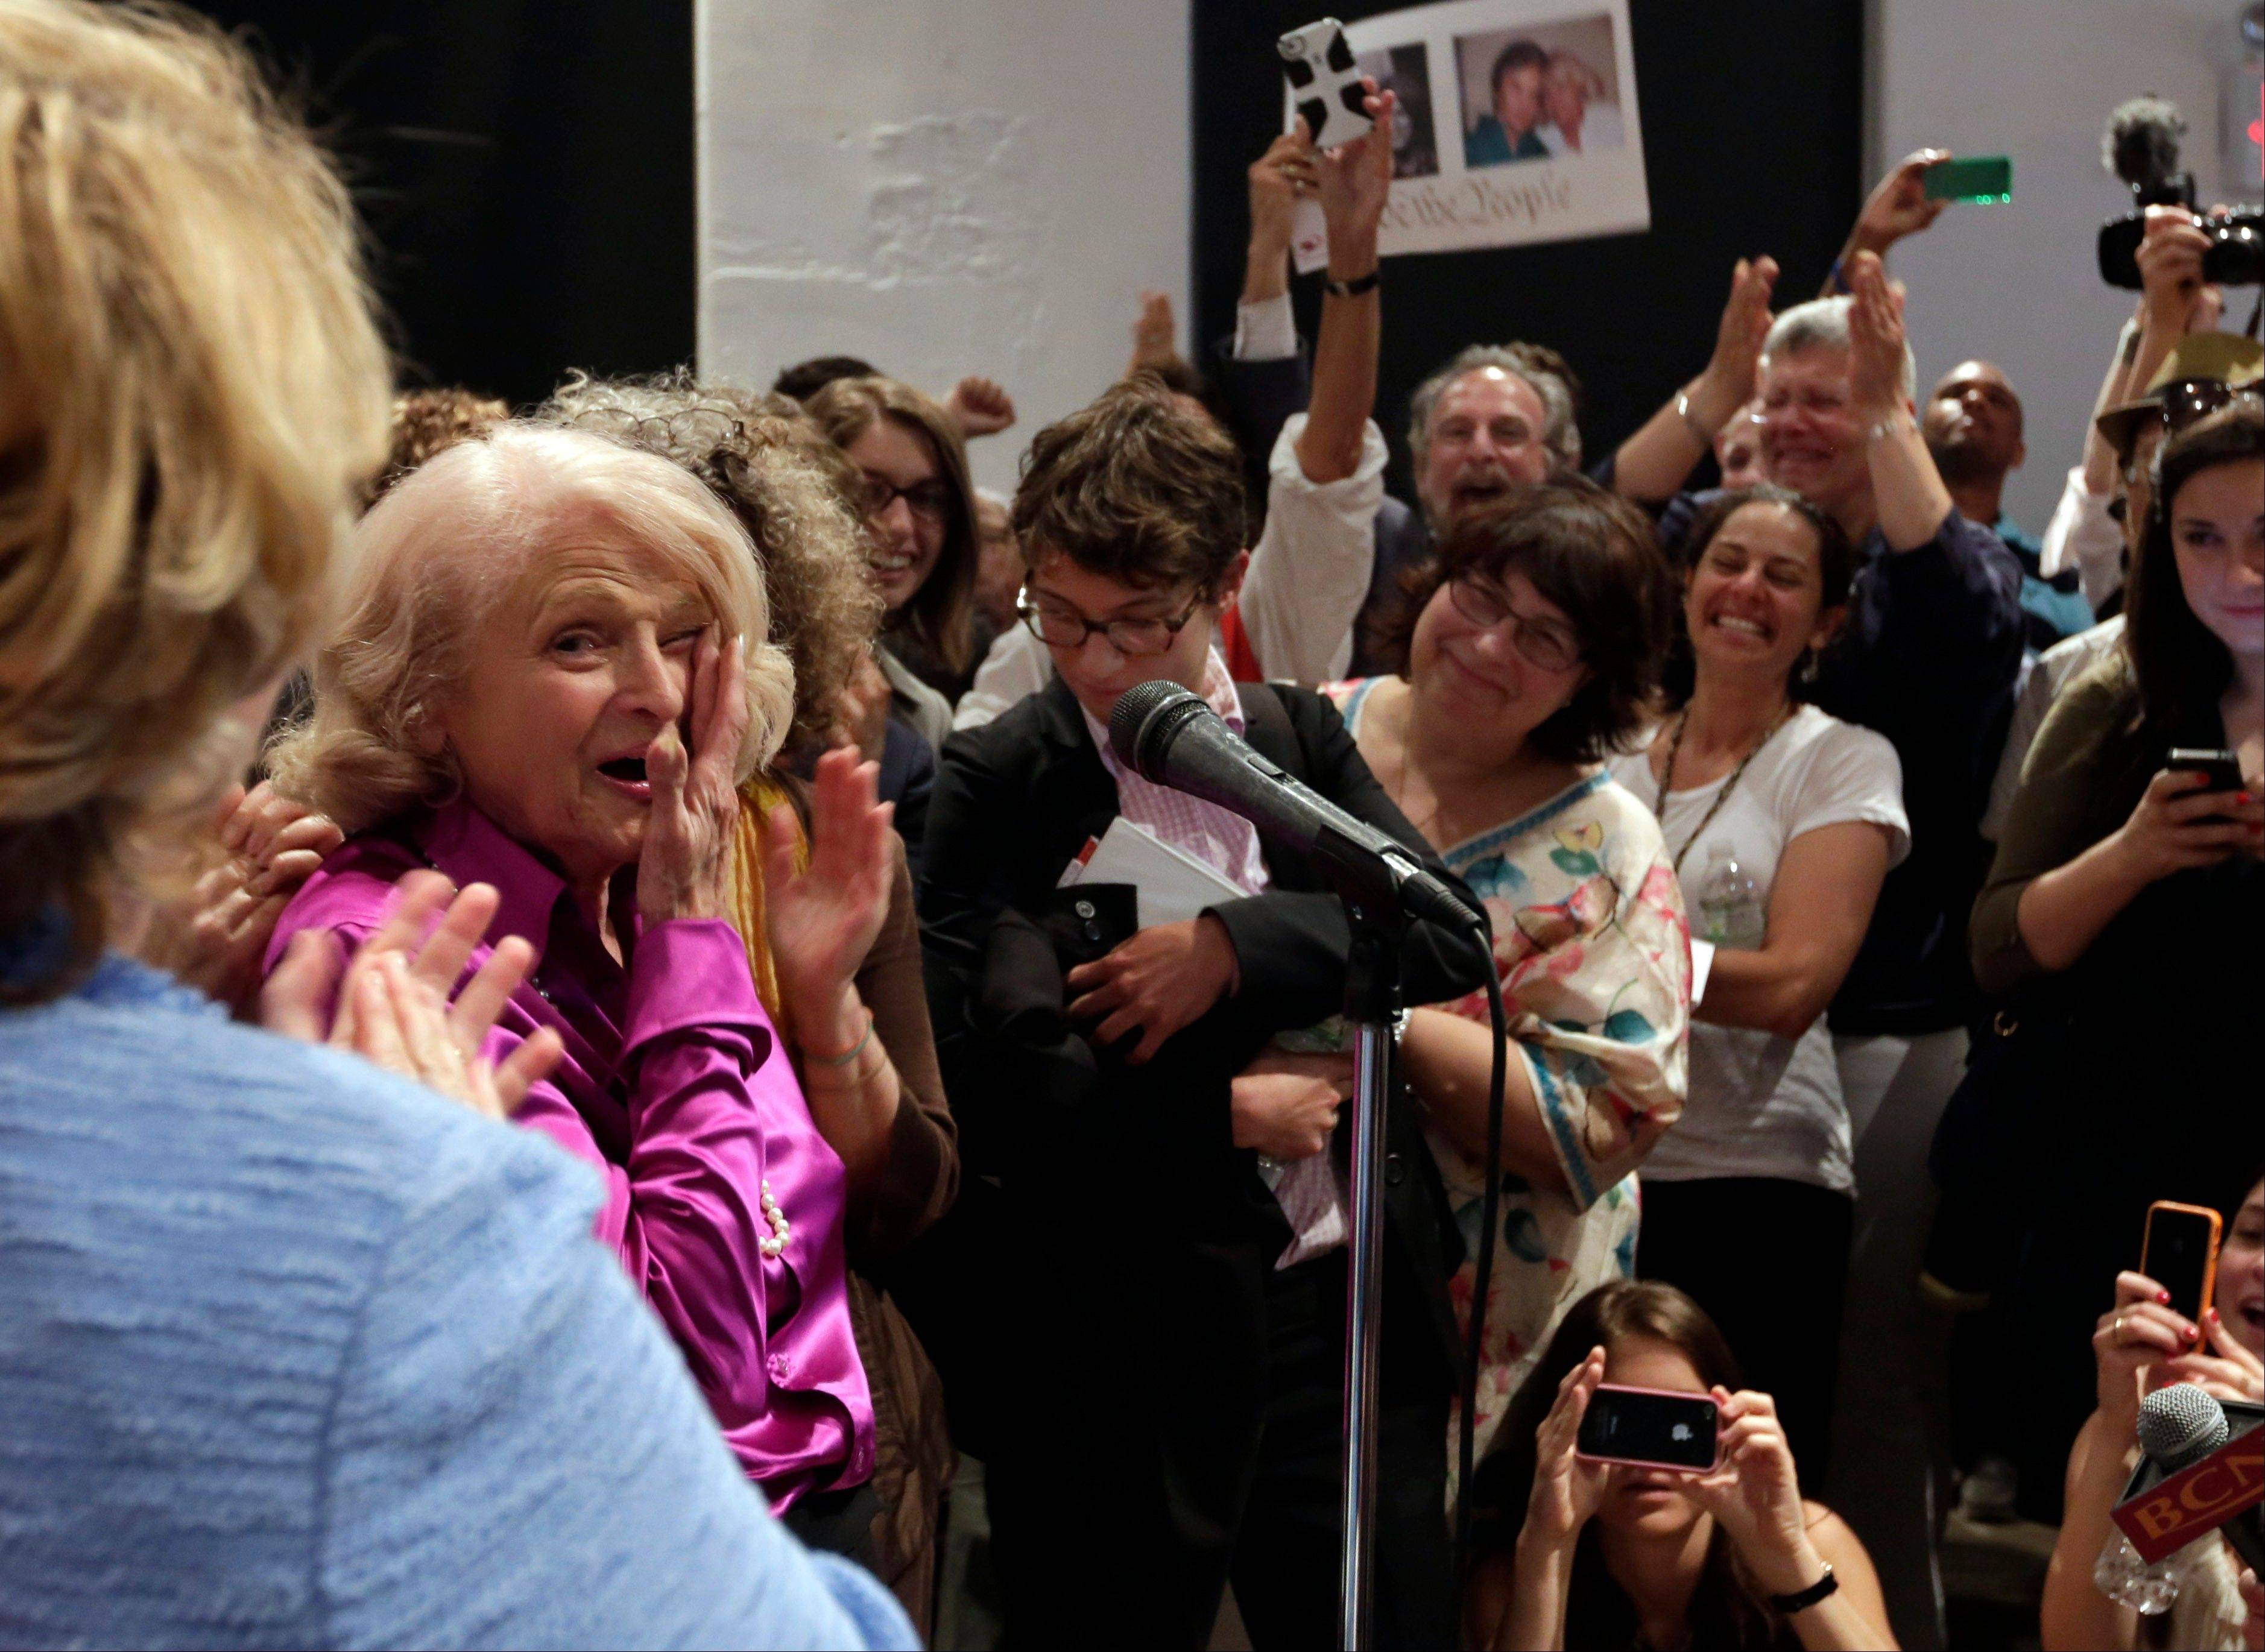 Edith Windsor, left, the plaintiff in the historic gay marriage case that was before the U.S. Supreme Court, wipes her eyes Wednesday after addressing supporters at the LGBT Center, in New York.